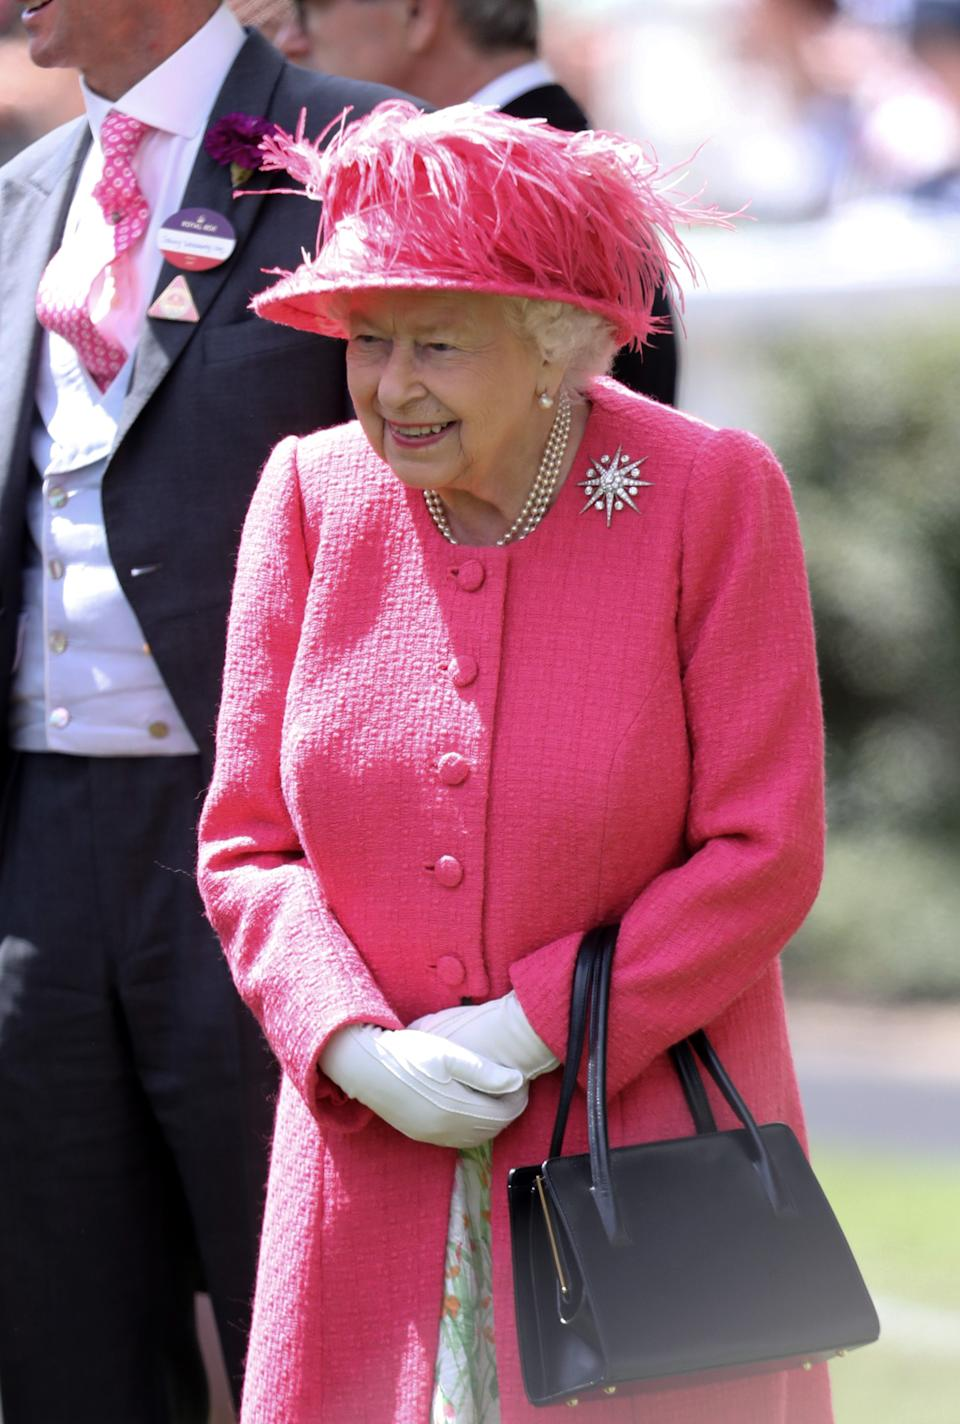 ASCOT, ENGLAND - JUNE 21:  Queen Elizabeth II arrives on day four of Royal Ascot at Ascot Racecourse on June 21, 2019 in Ascot, England. (Photo by Chris Jackson/Getty Images)